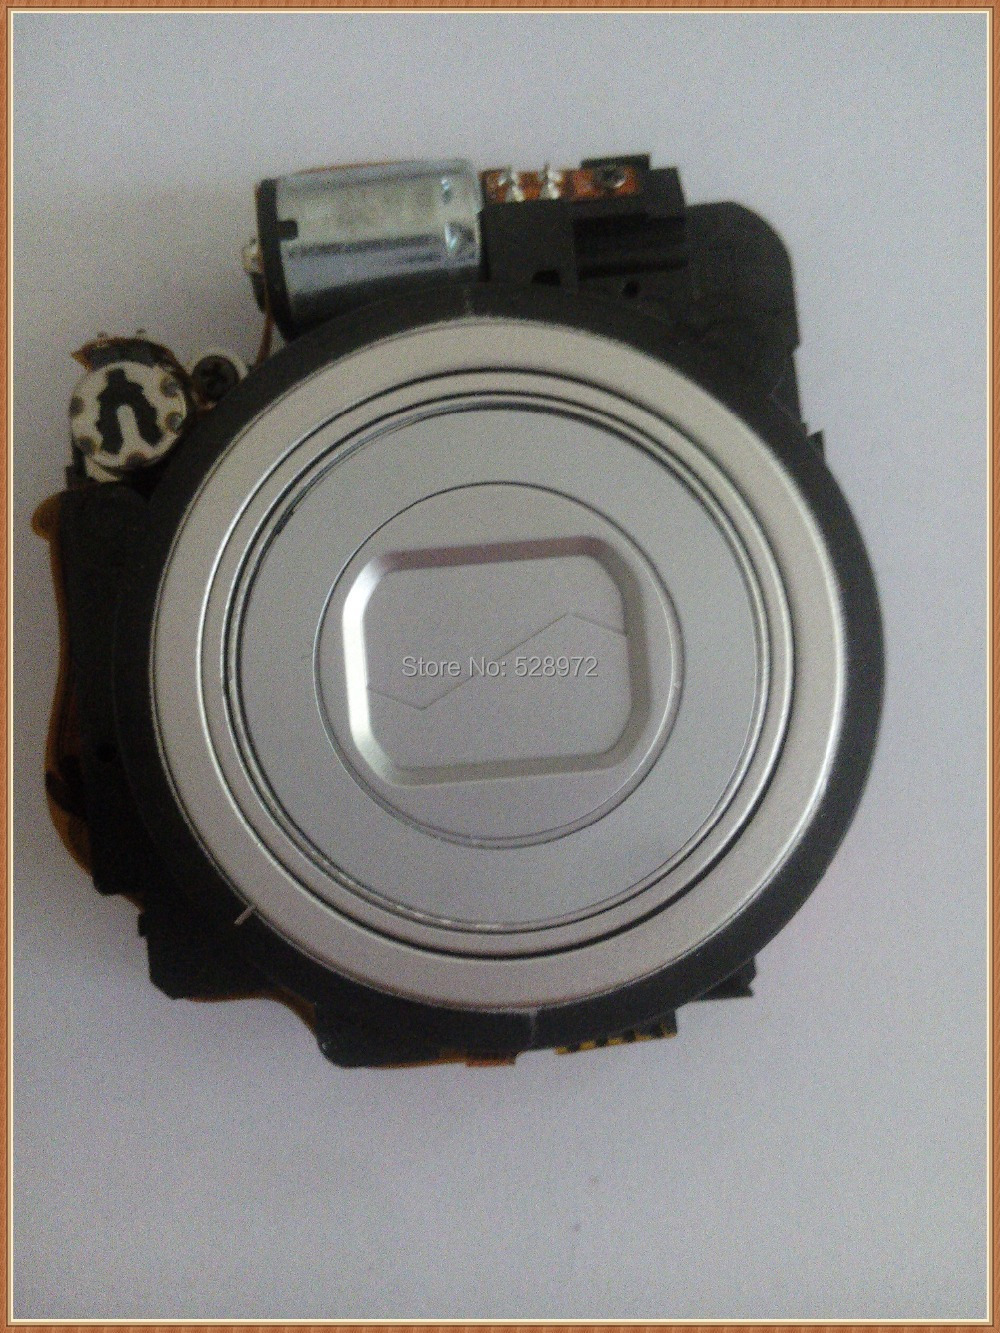 FREE SHIPPING! NEW Digital Camera Replacement Repair Parts For Nikon COOLPIX S3100 Lens Zoom Unit